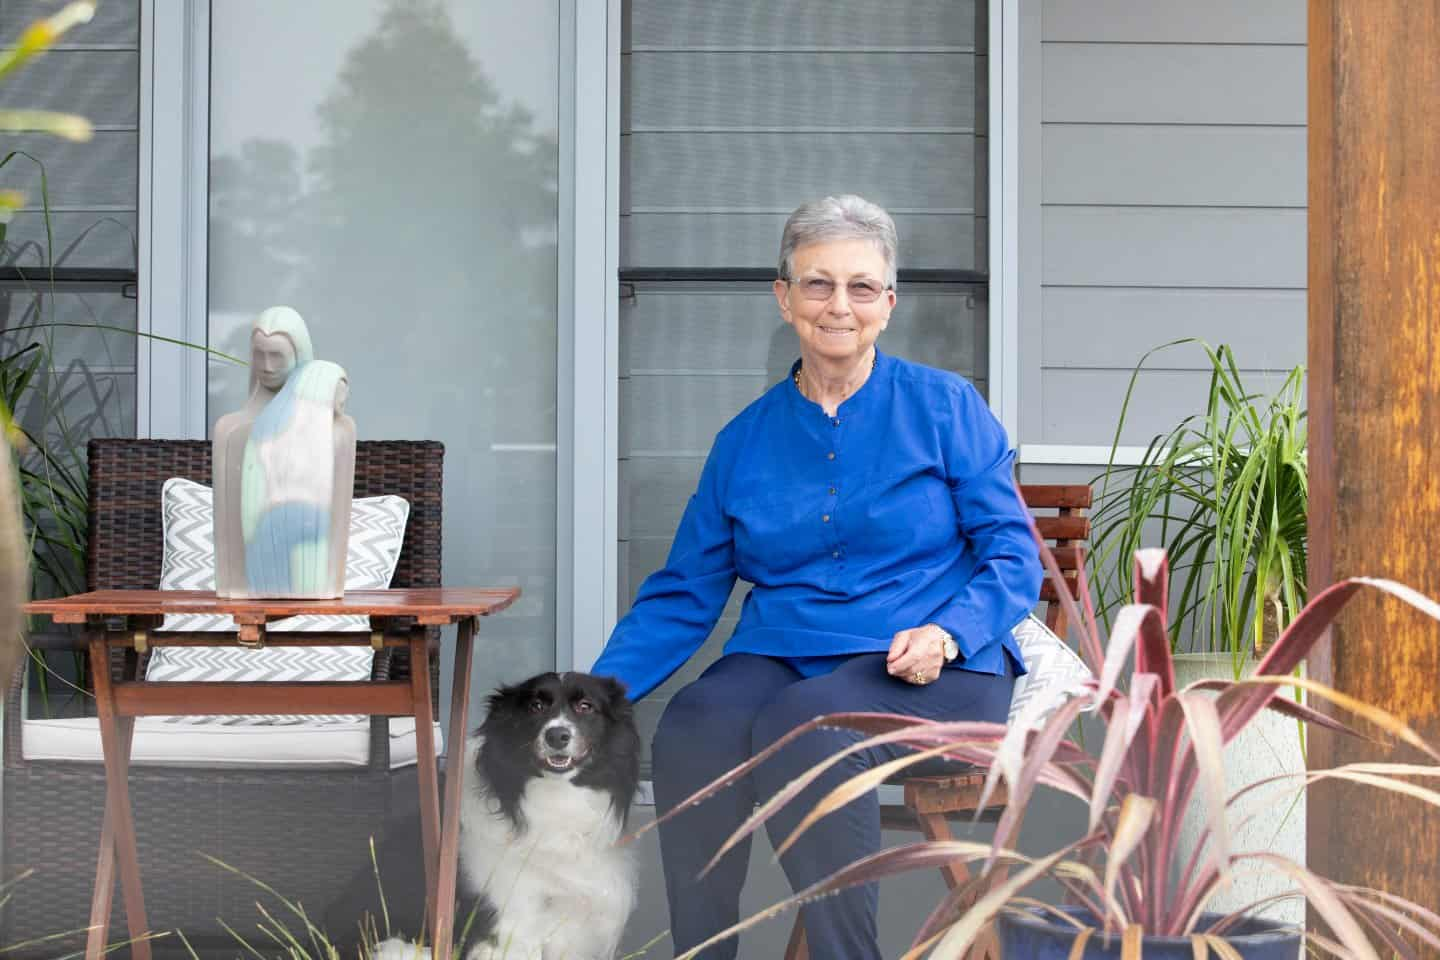 image of Gayle Copeland, owner of Home Funders Australia, with her dog